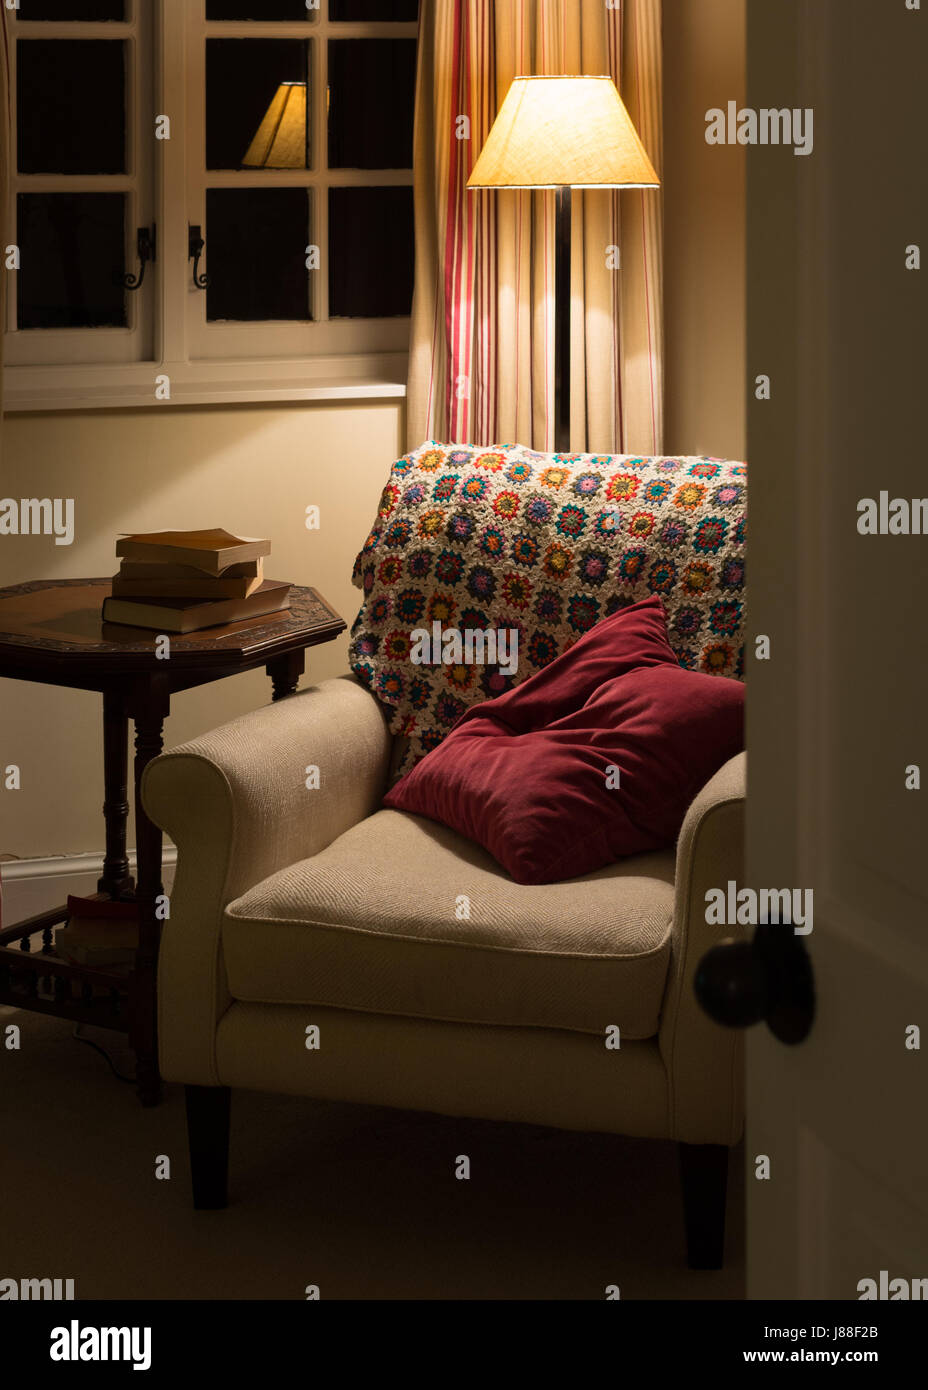 cosy armchair at night - Stock Image